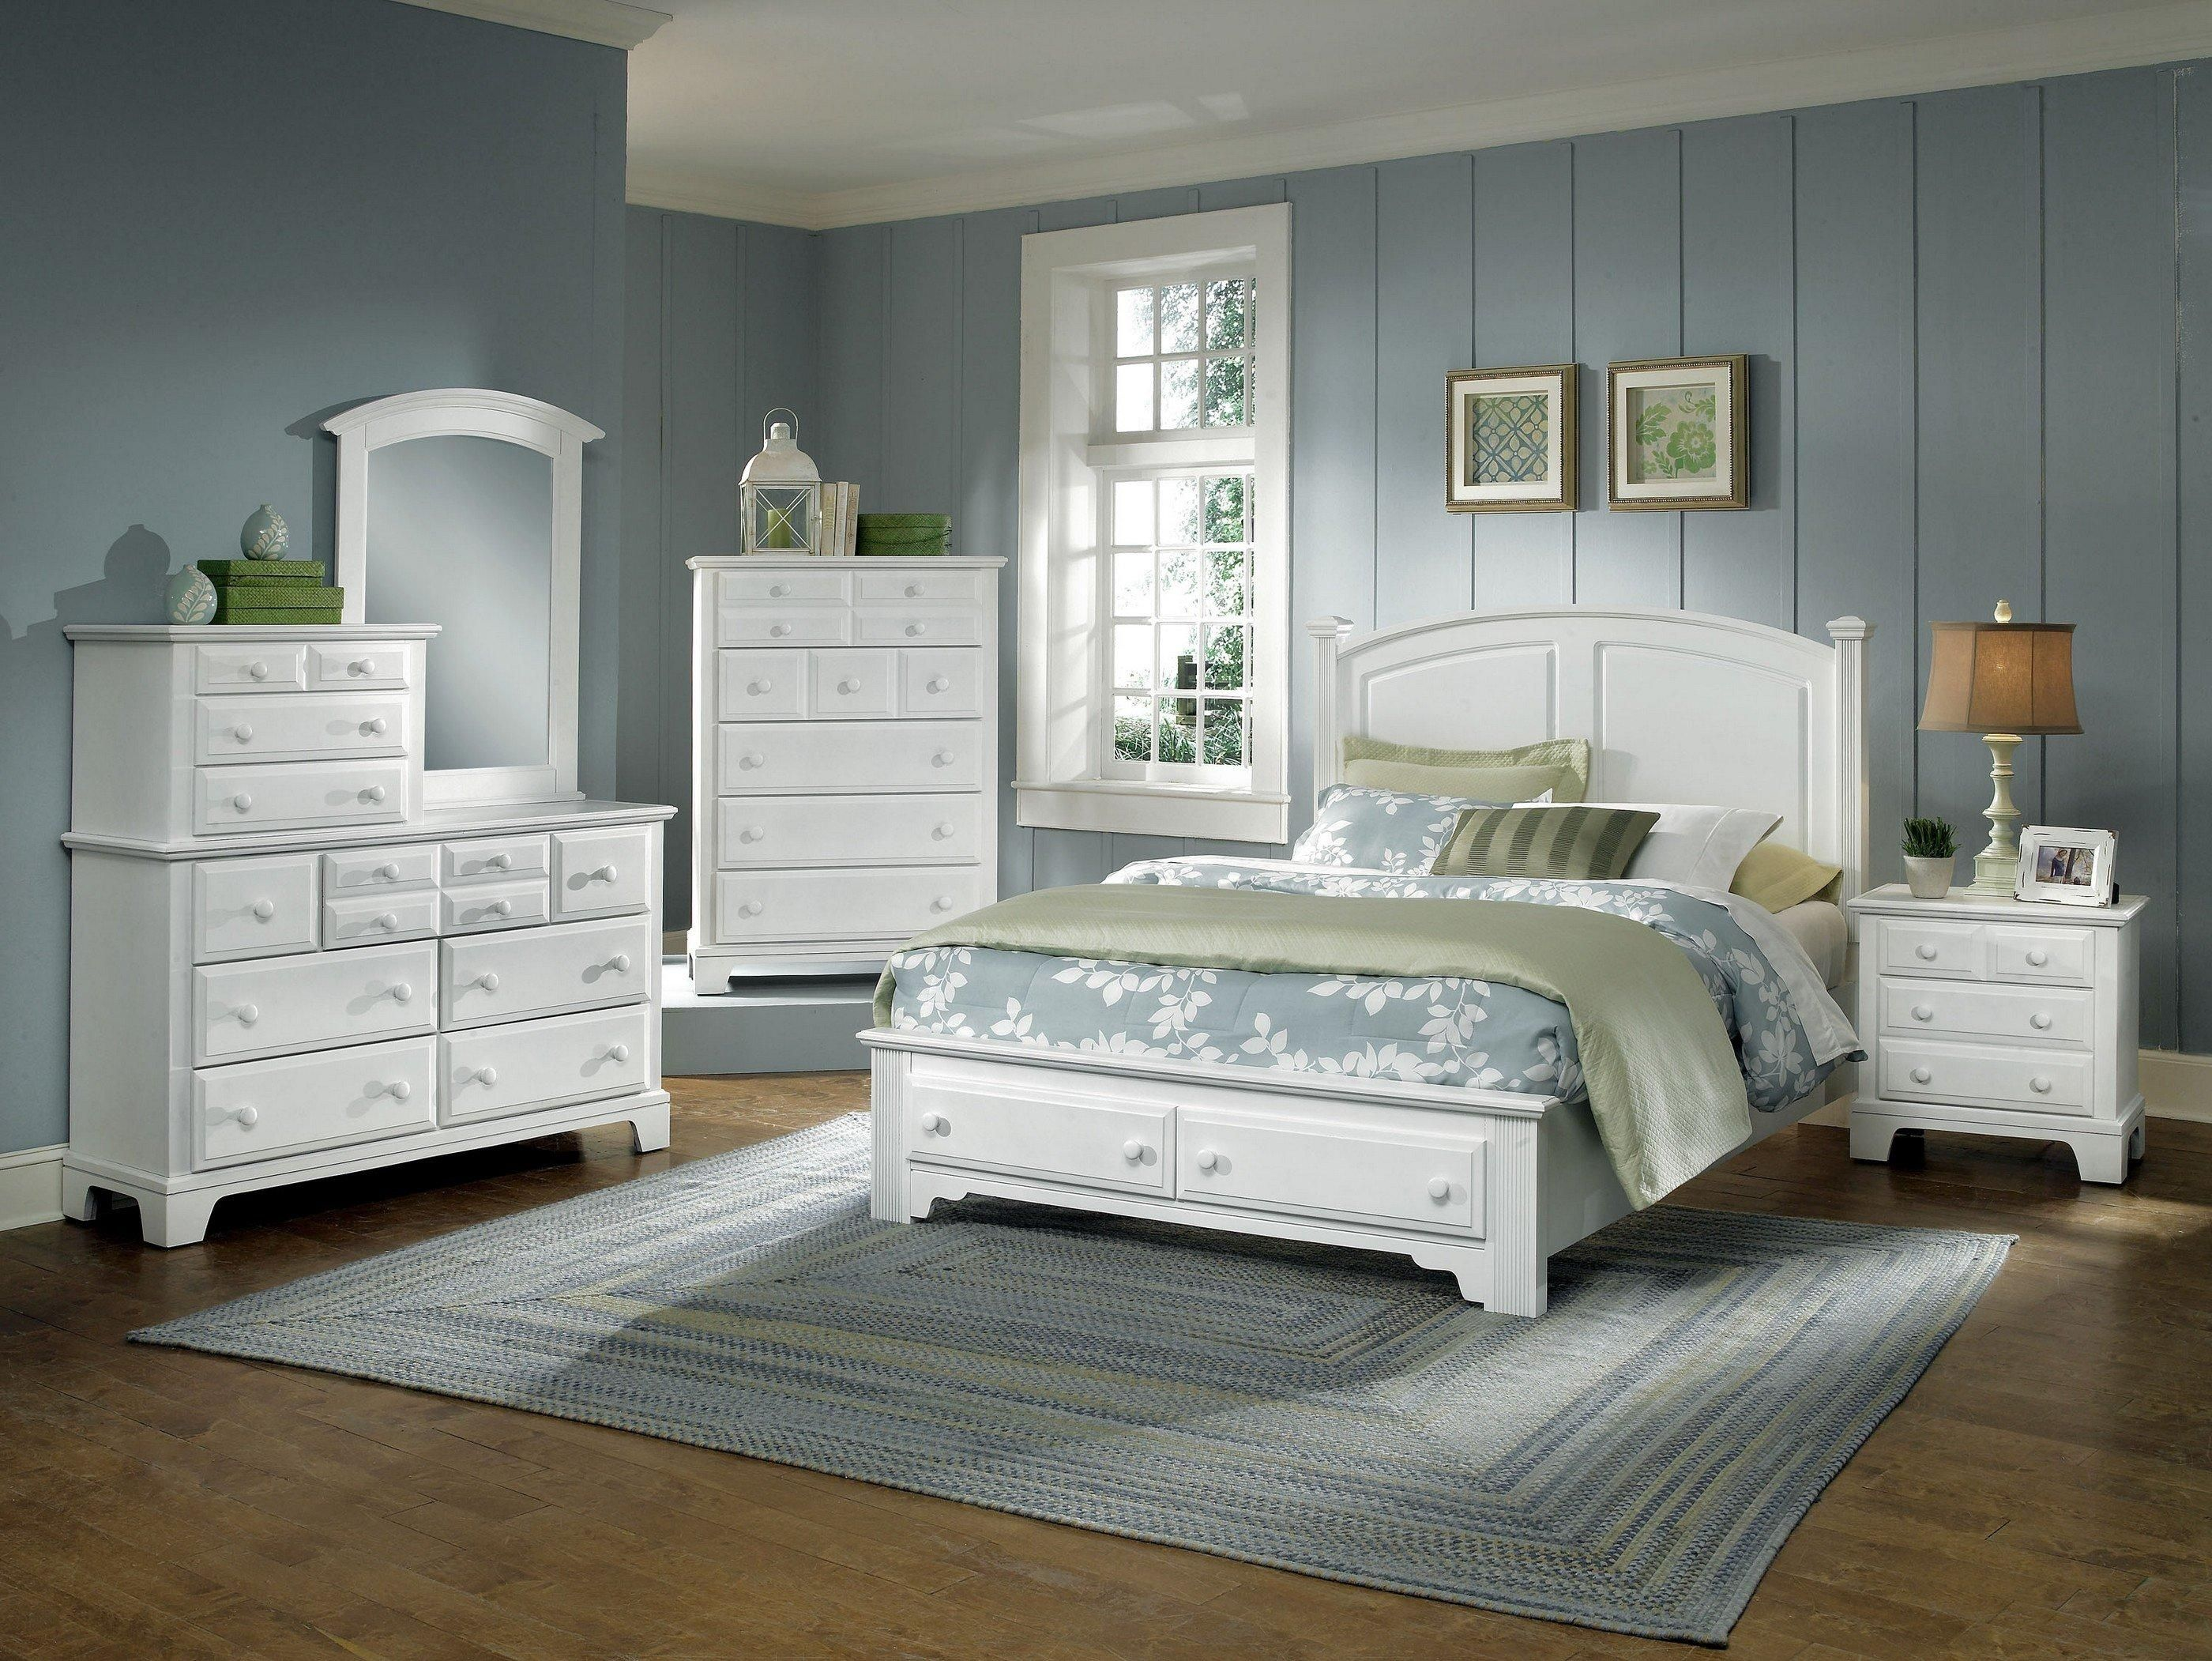 Pin by Katie Simmons on furniture White bedroom set